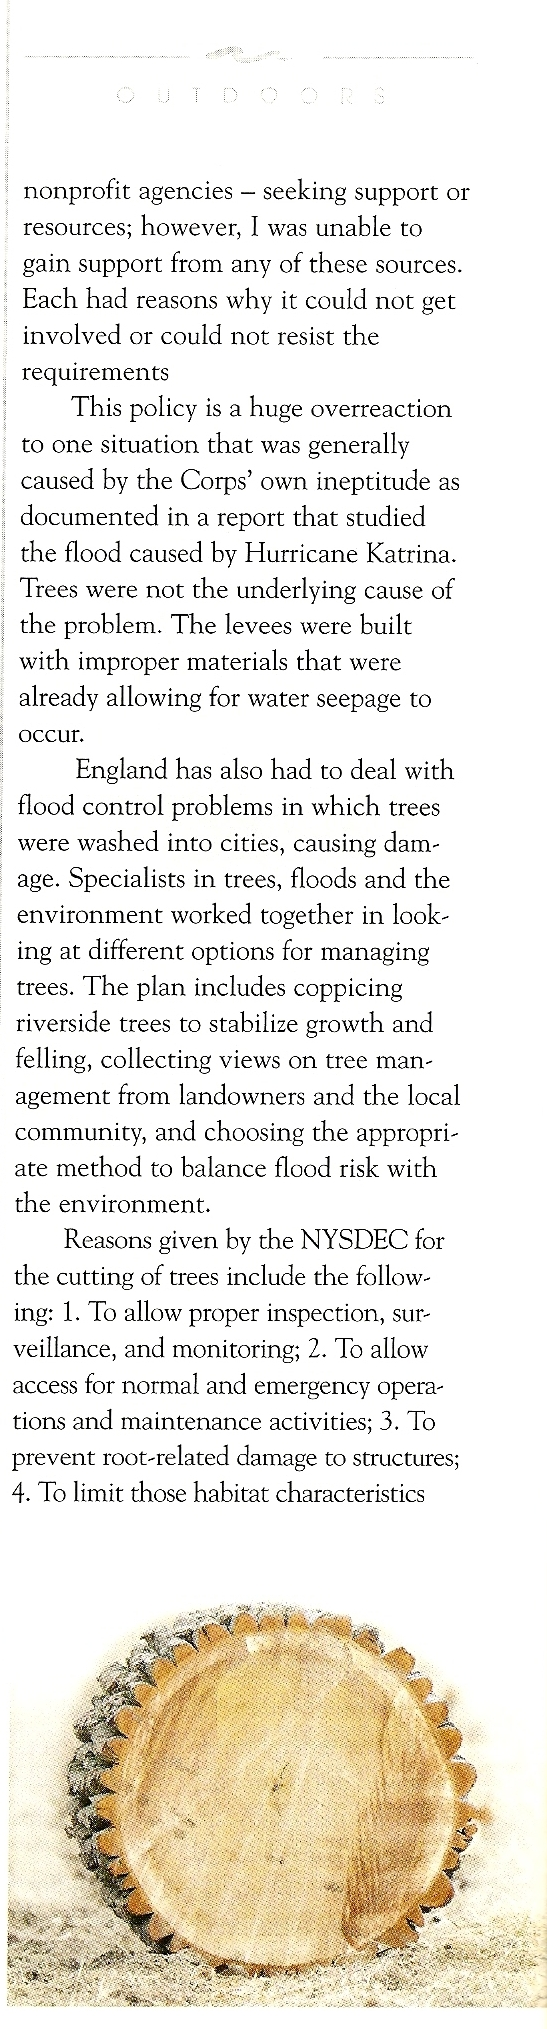 article-published-in-fall-2009-issue-of-life-in-the-finger-lakes-magazine-3_8608319894_o